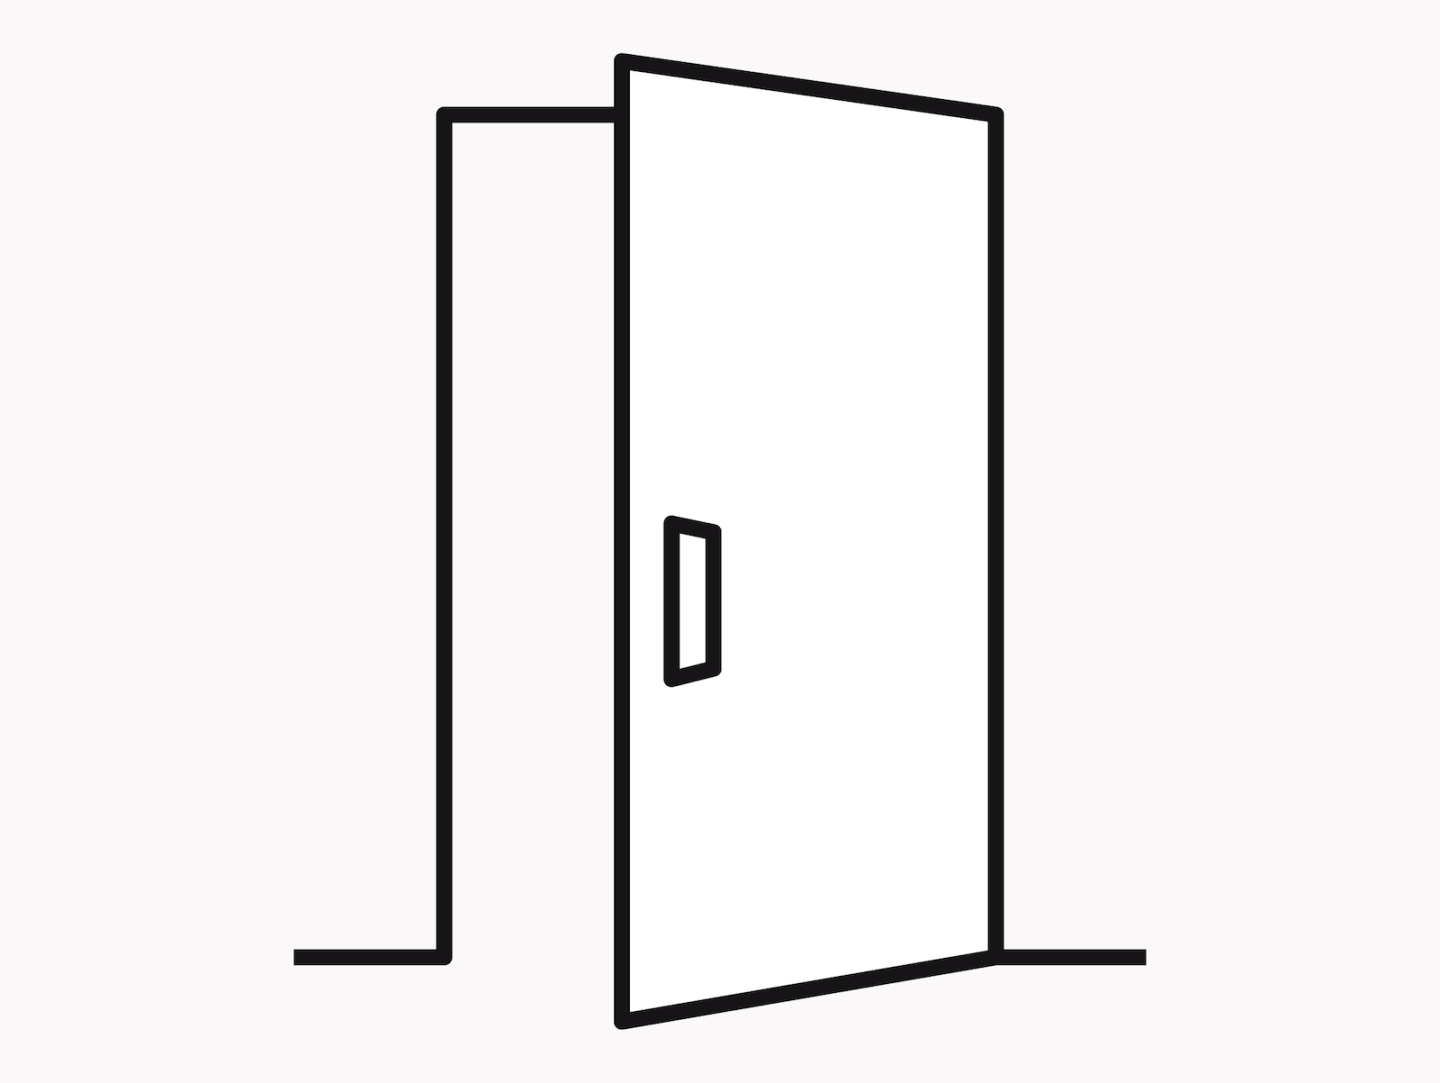 An illustration of a door opening in